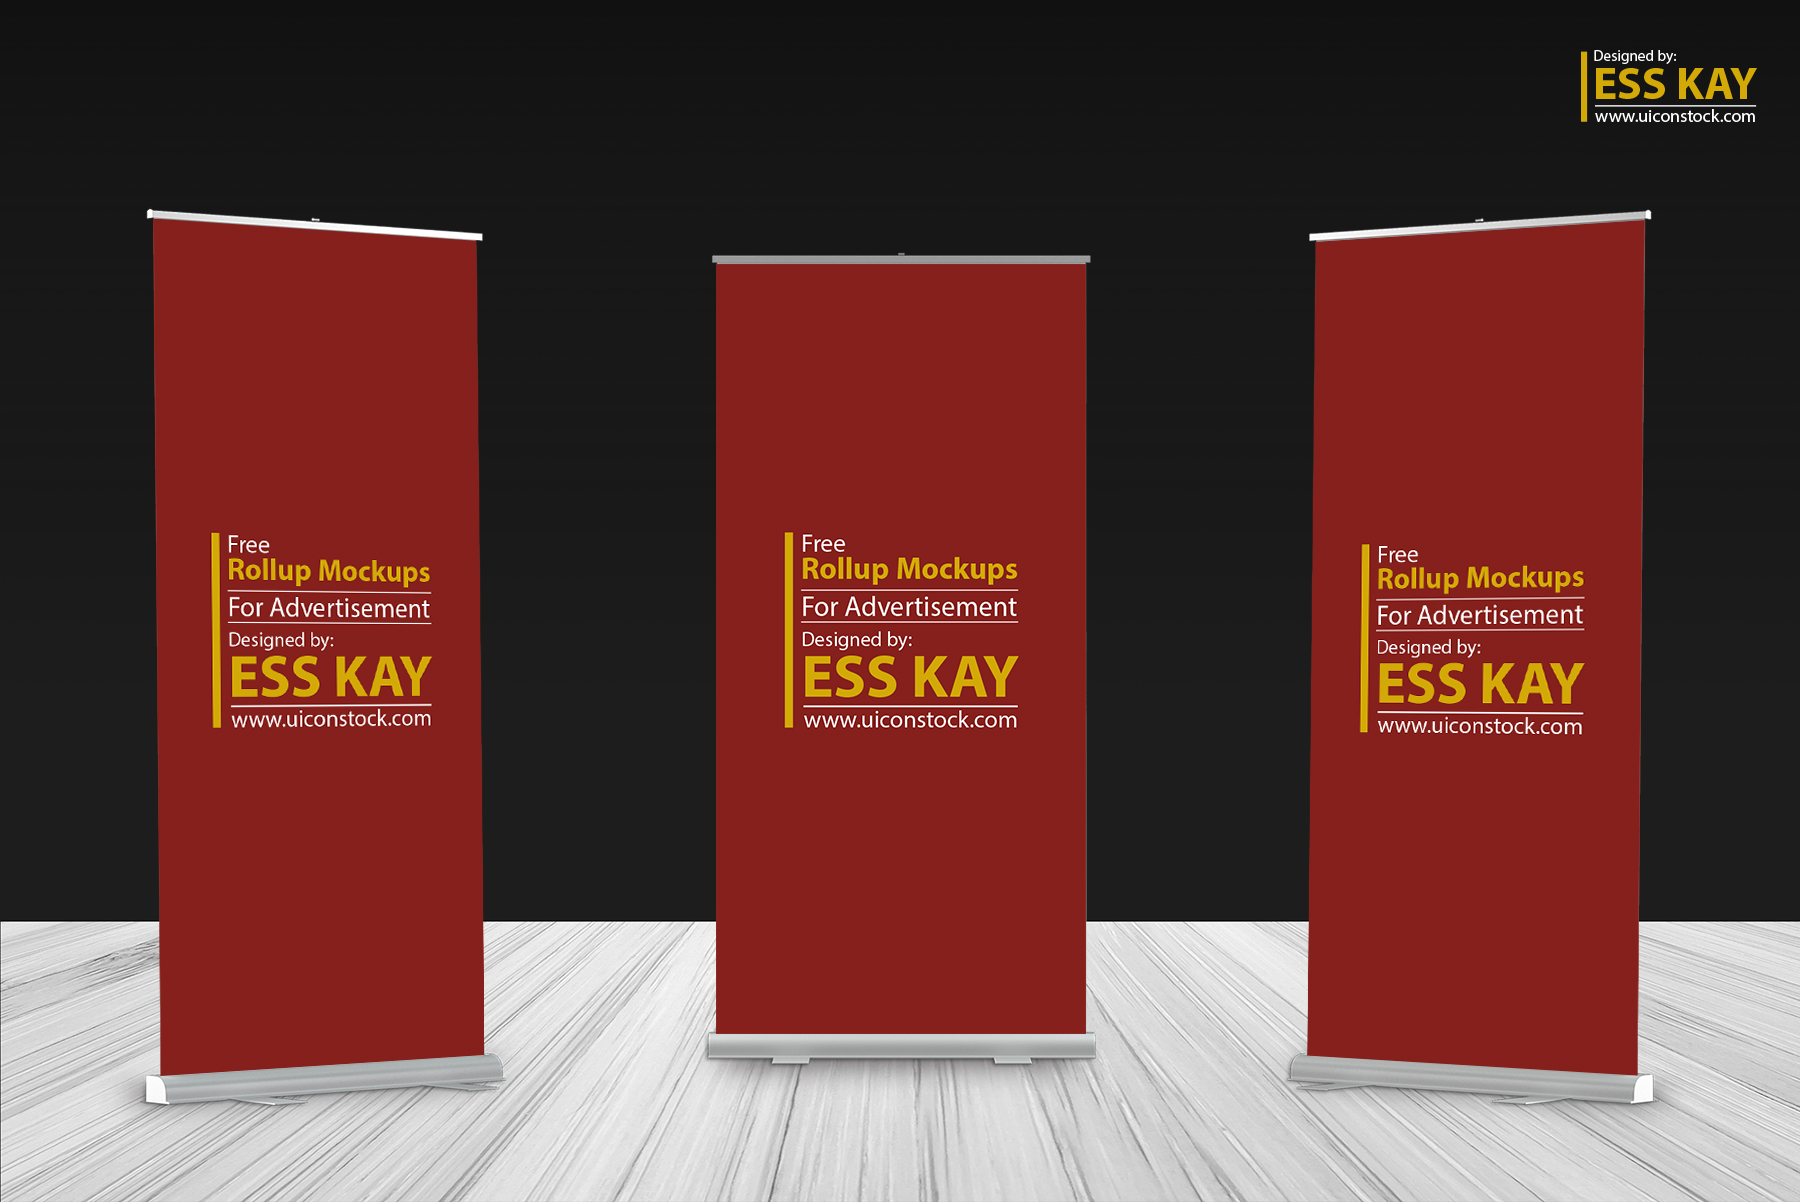 free 3 rollup mockups for advertisement